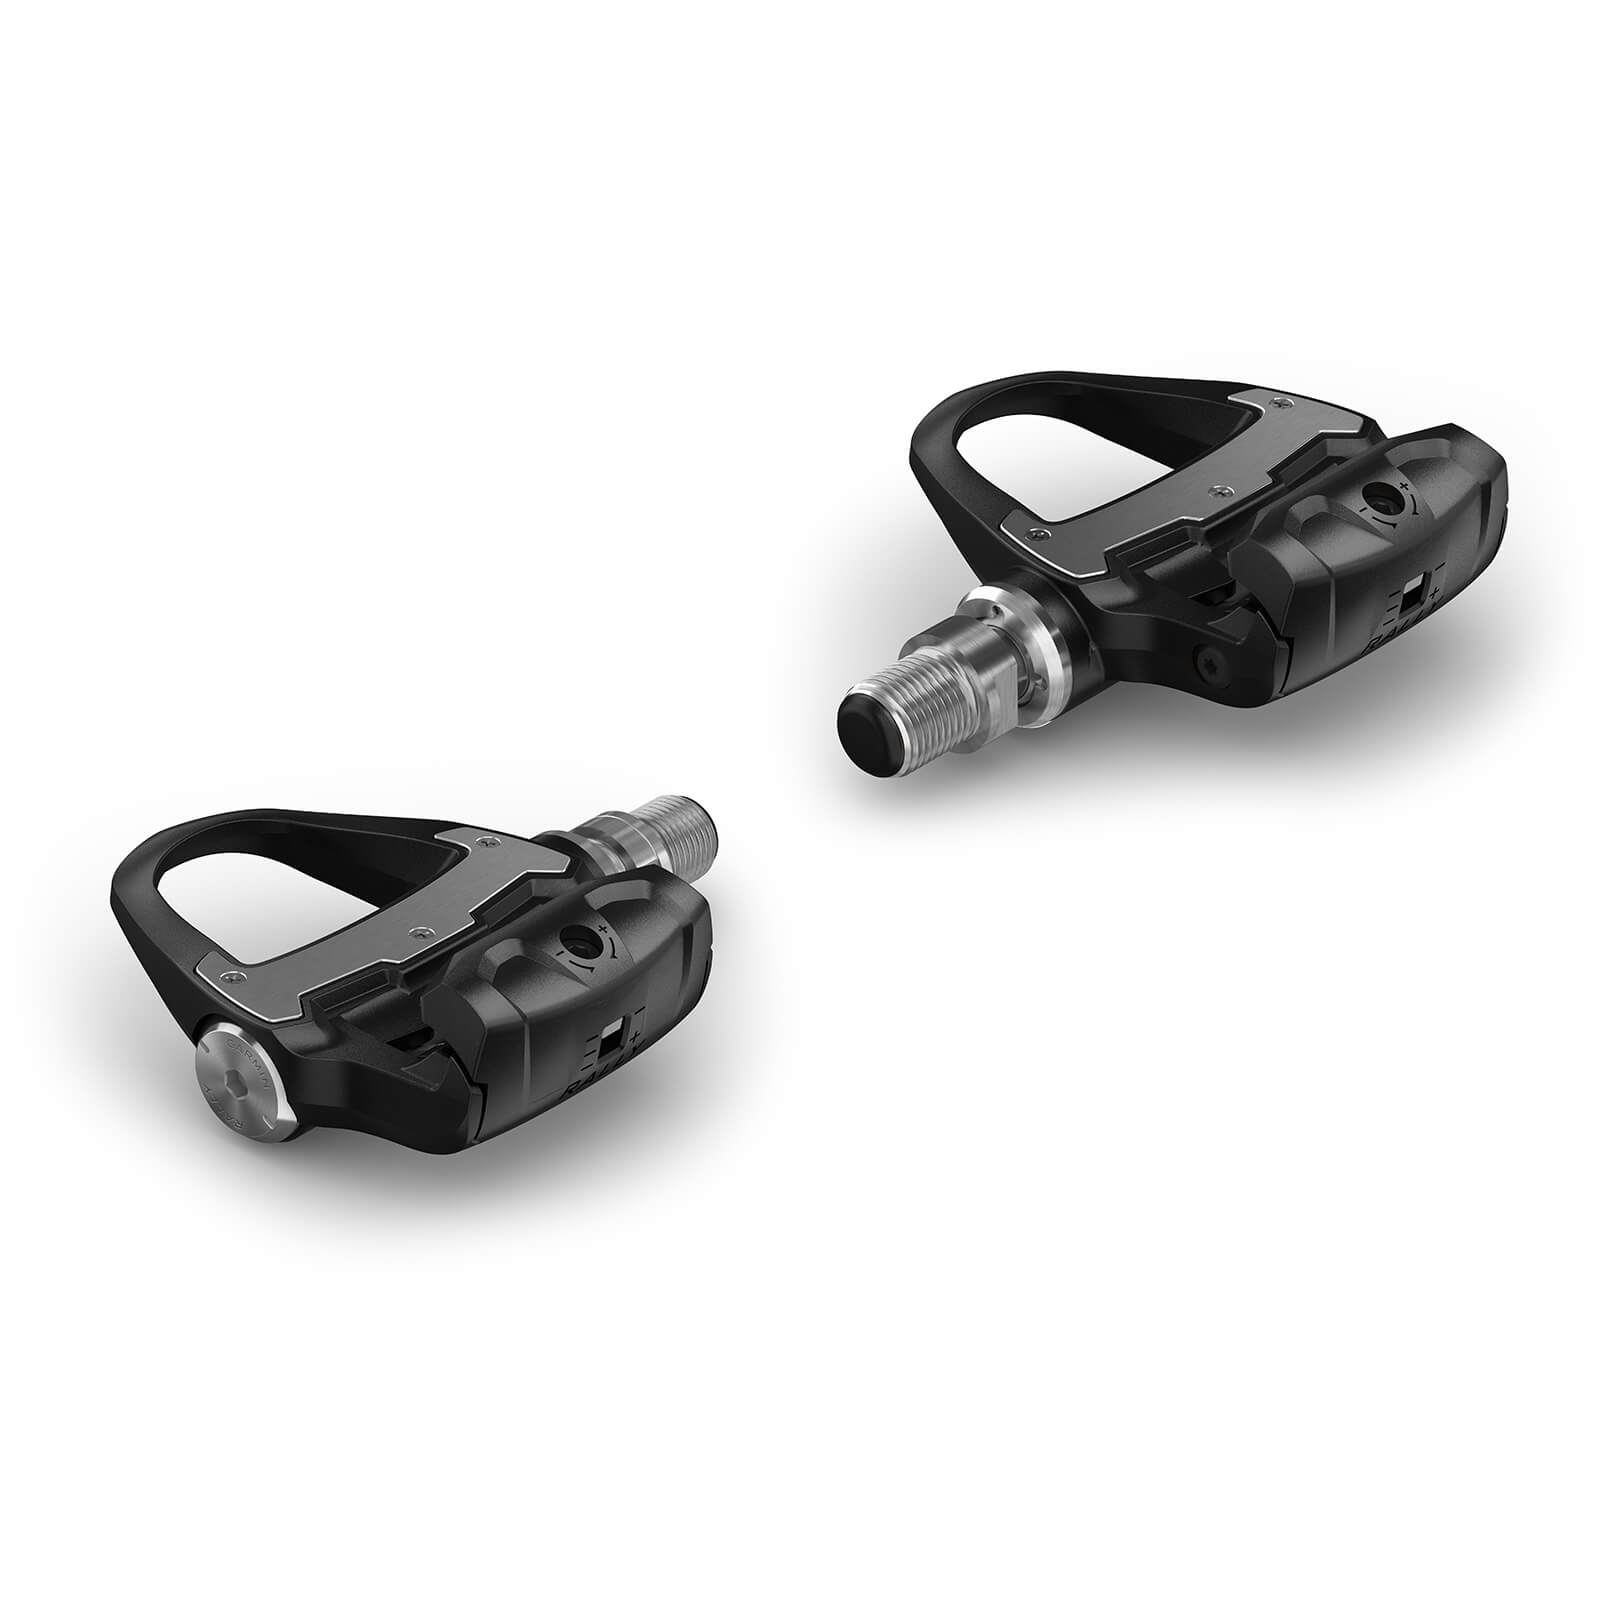 Garmin Rally RS100 Single Sided SPD-SL Power Meter Pedals